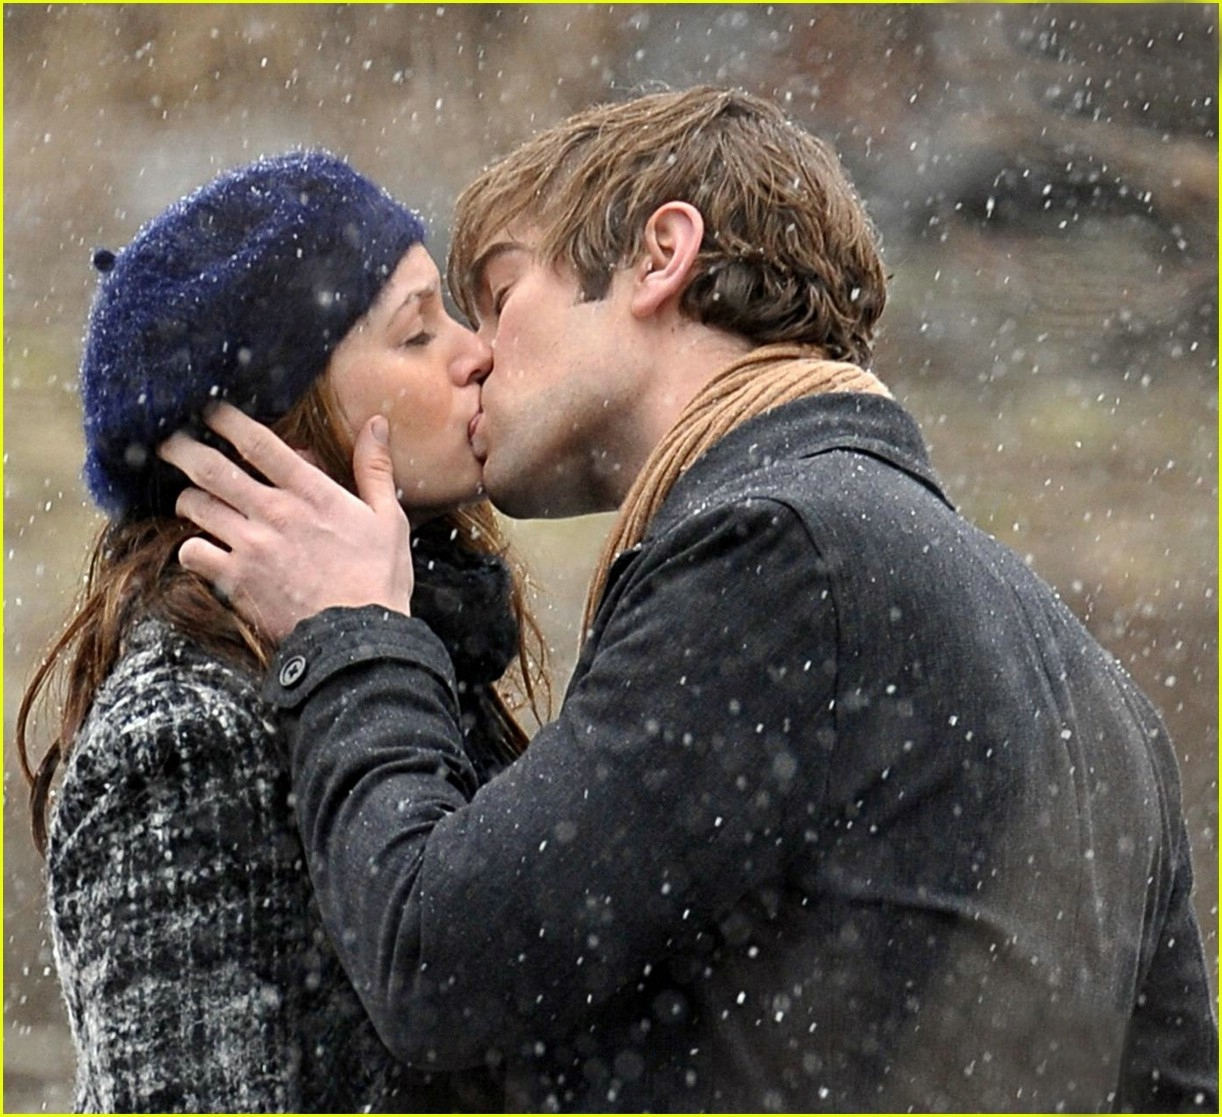 romantic couple kissing wallpapers|lips kiss love hd images